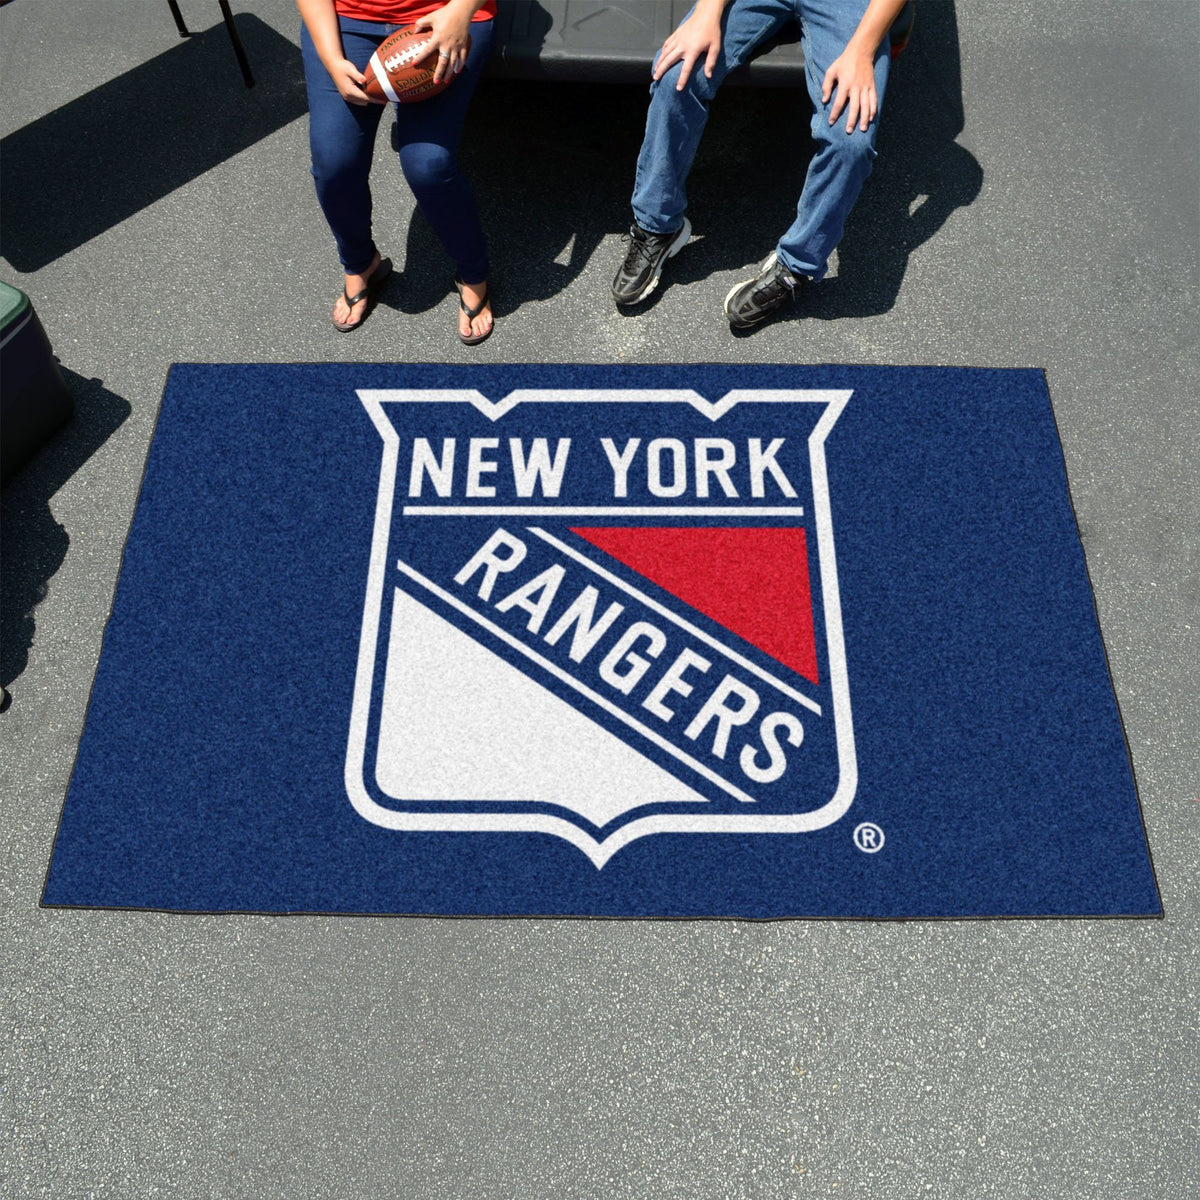 NHL - Ulti-Mat NHL Mats, Rectangular Mats, Ulti-Mat, NHL, Home Fan Mats New York Rangers